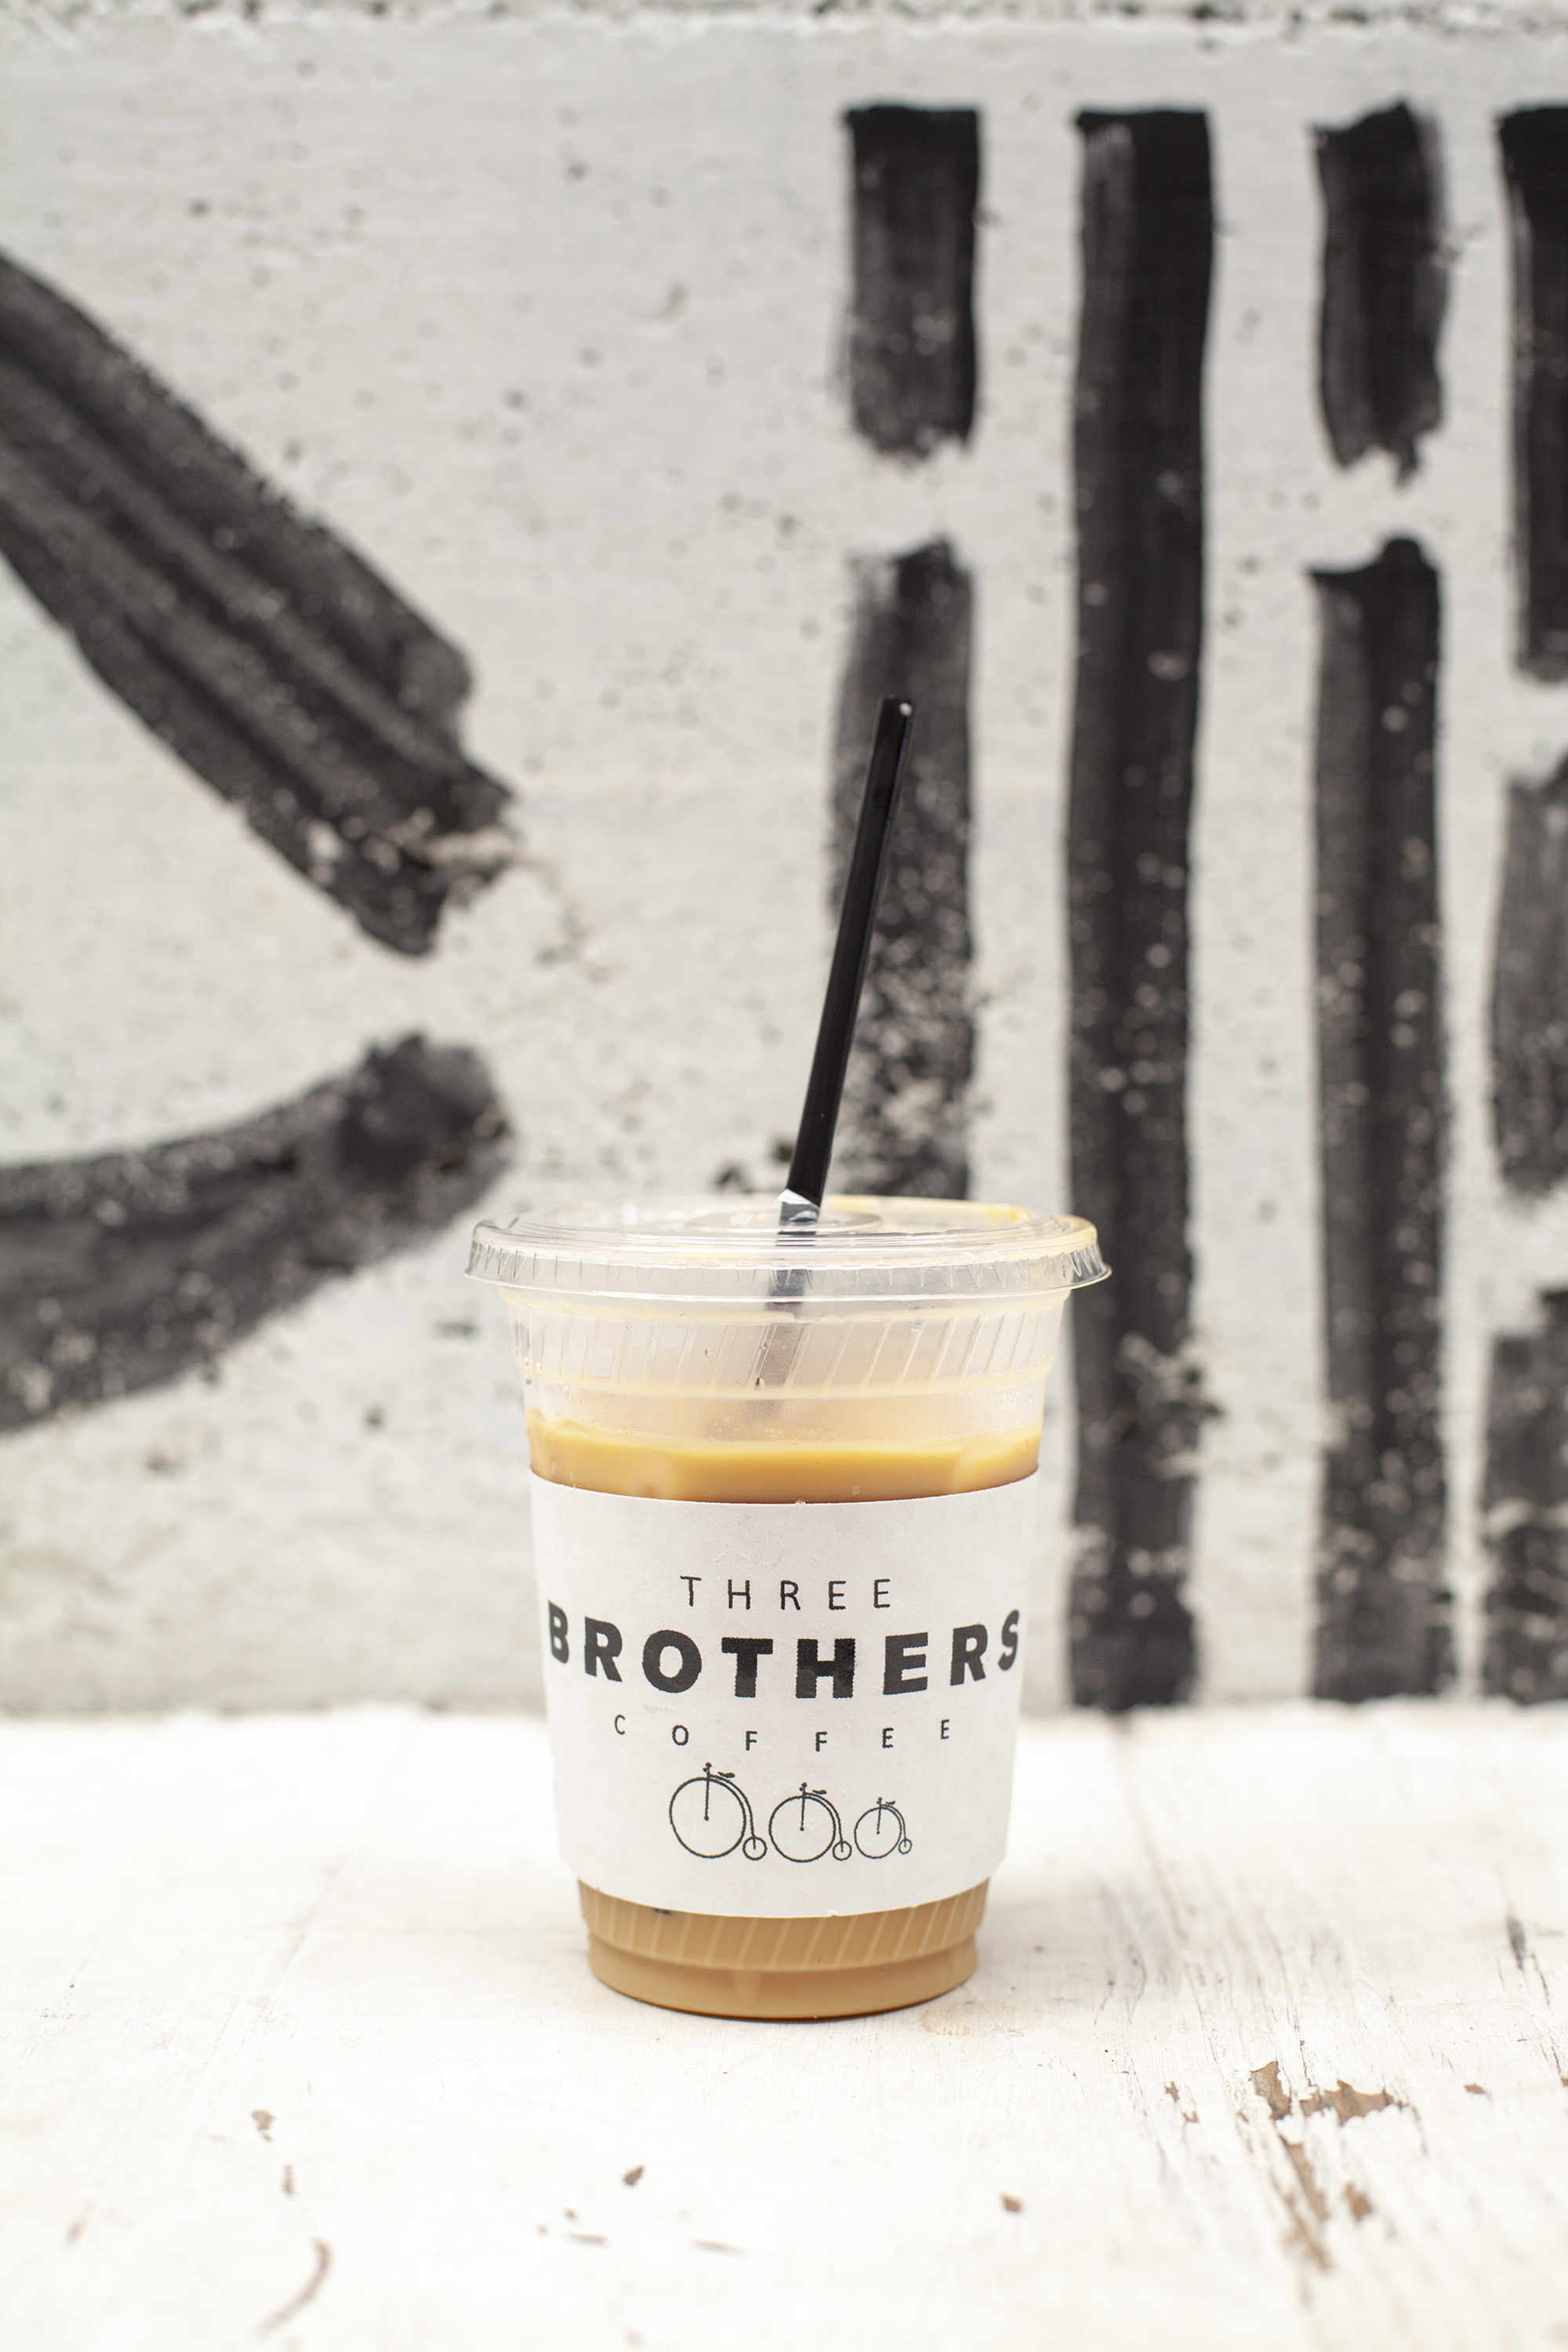 Nashville Travel Guide - Three Brothers Coffee